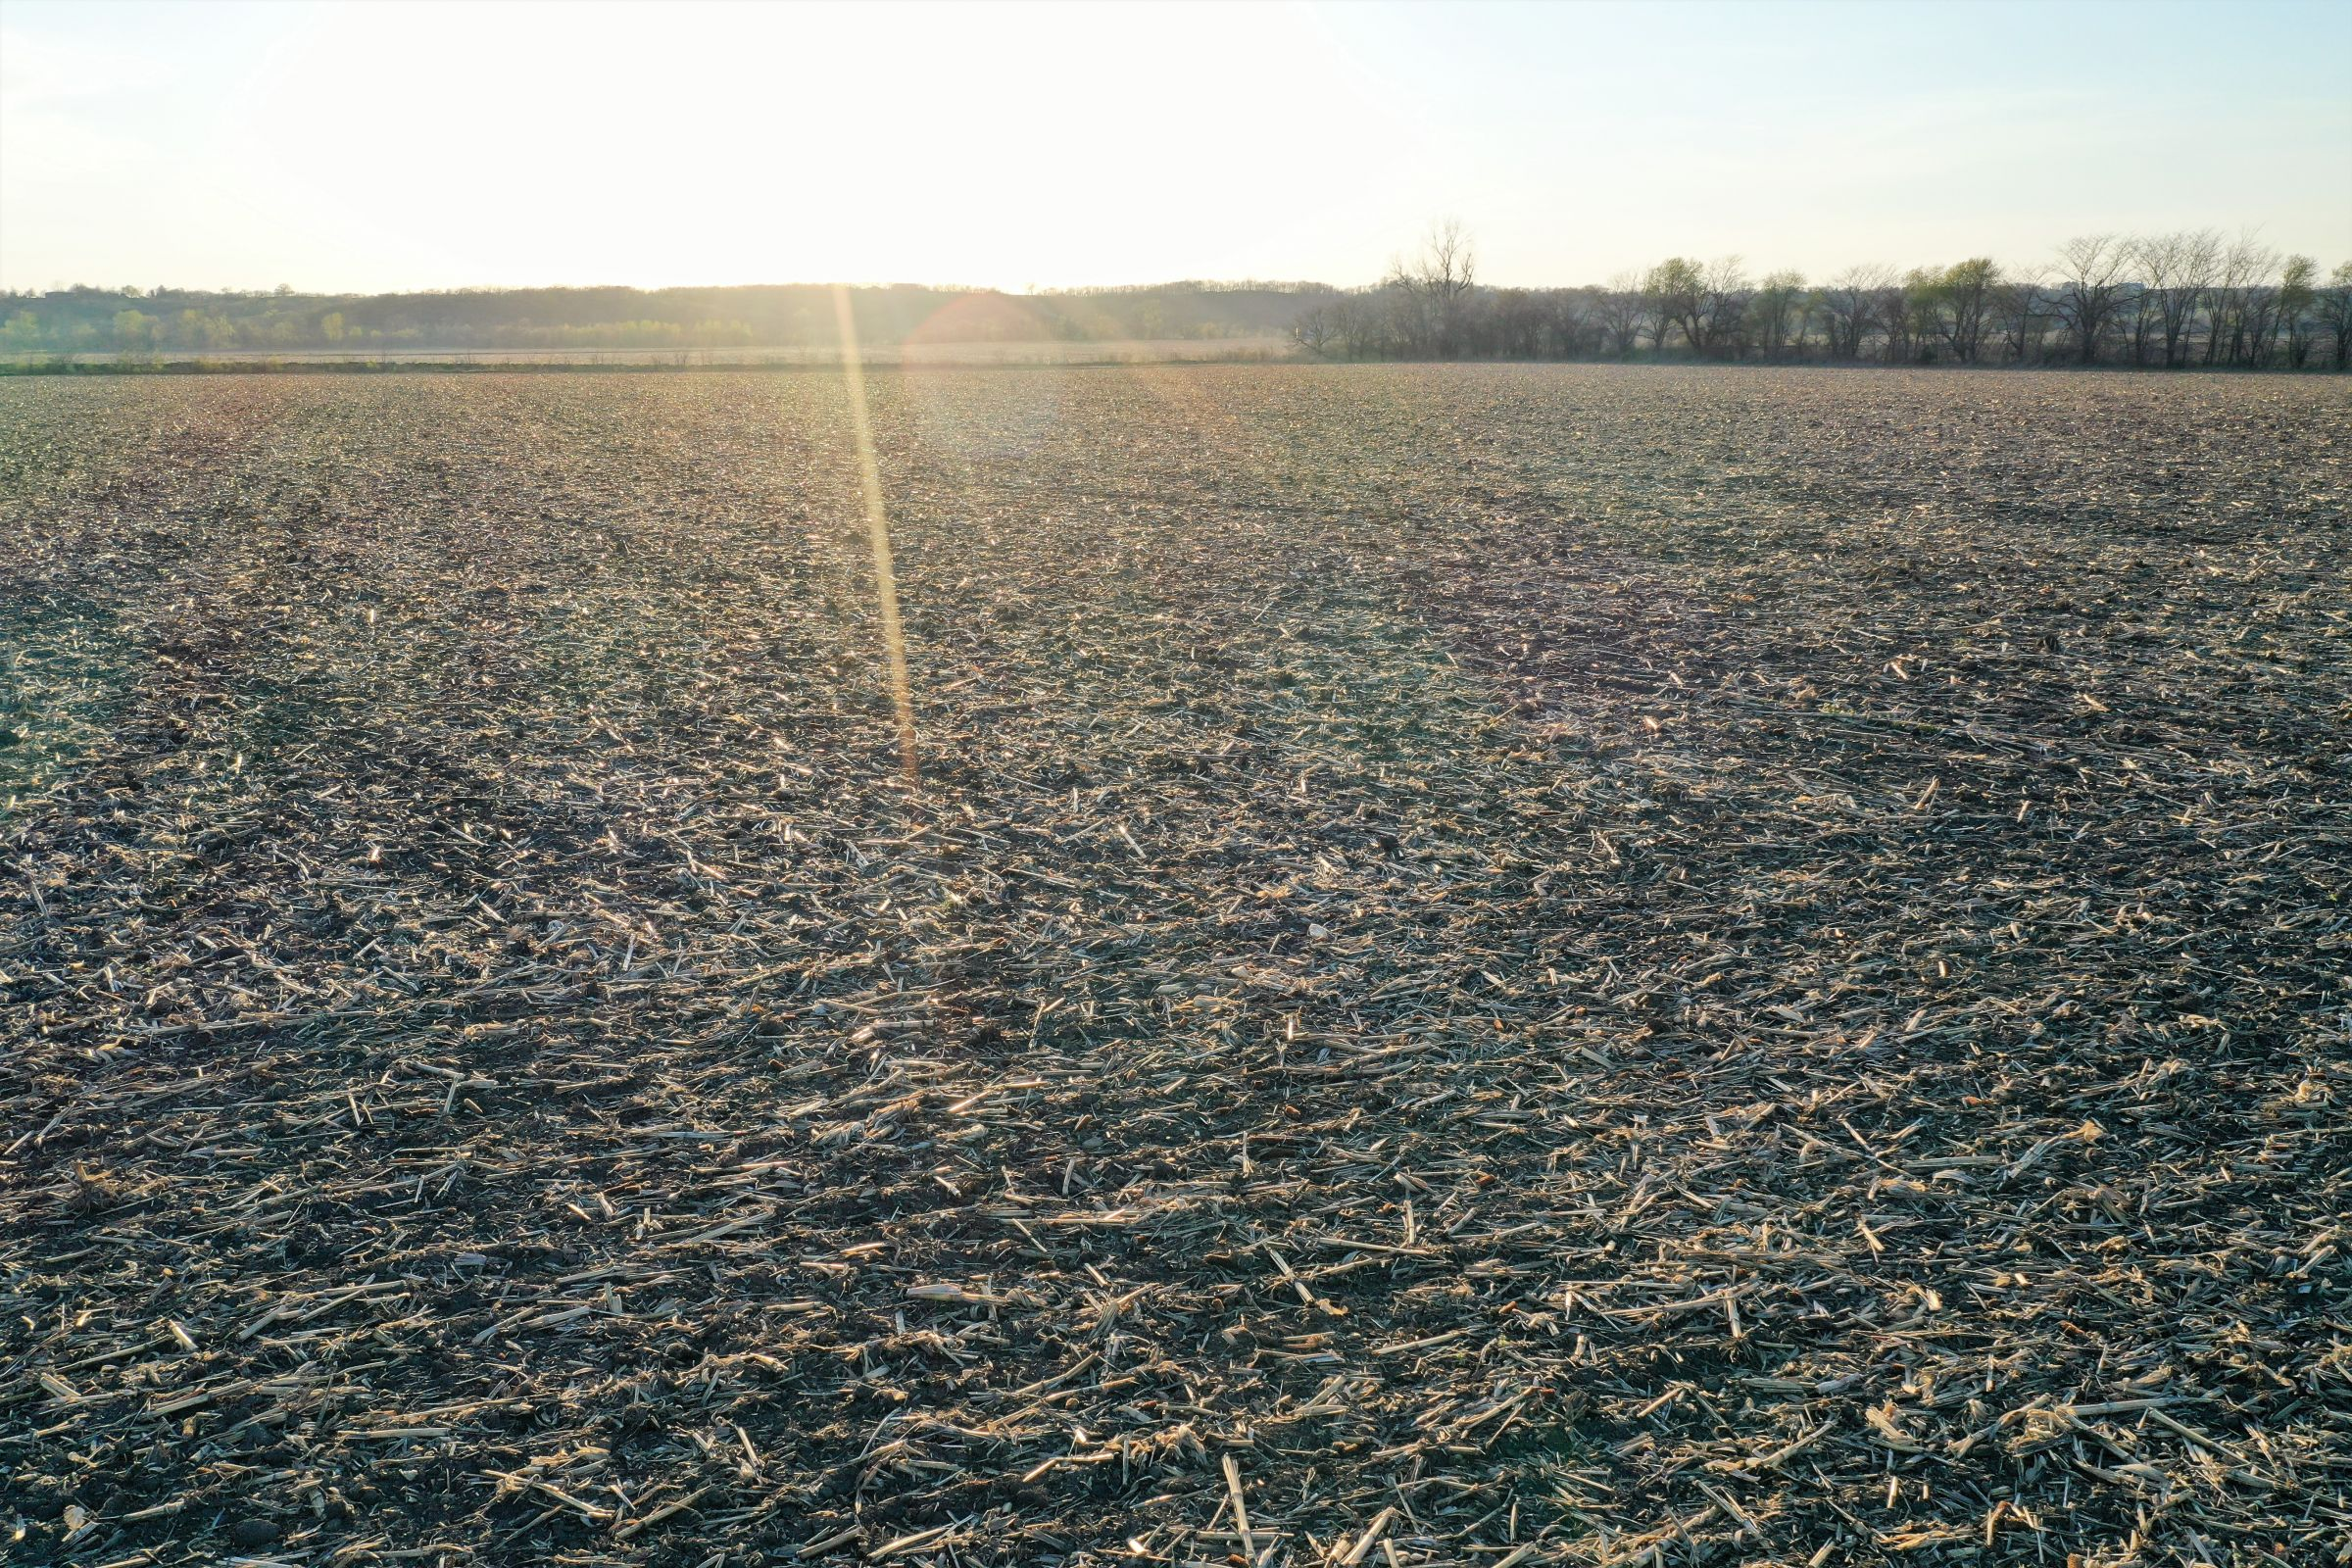 land-page-county-iowa-40-acres-listing-number-14981-5-2020-04-28-184124.jpg